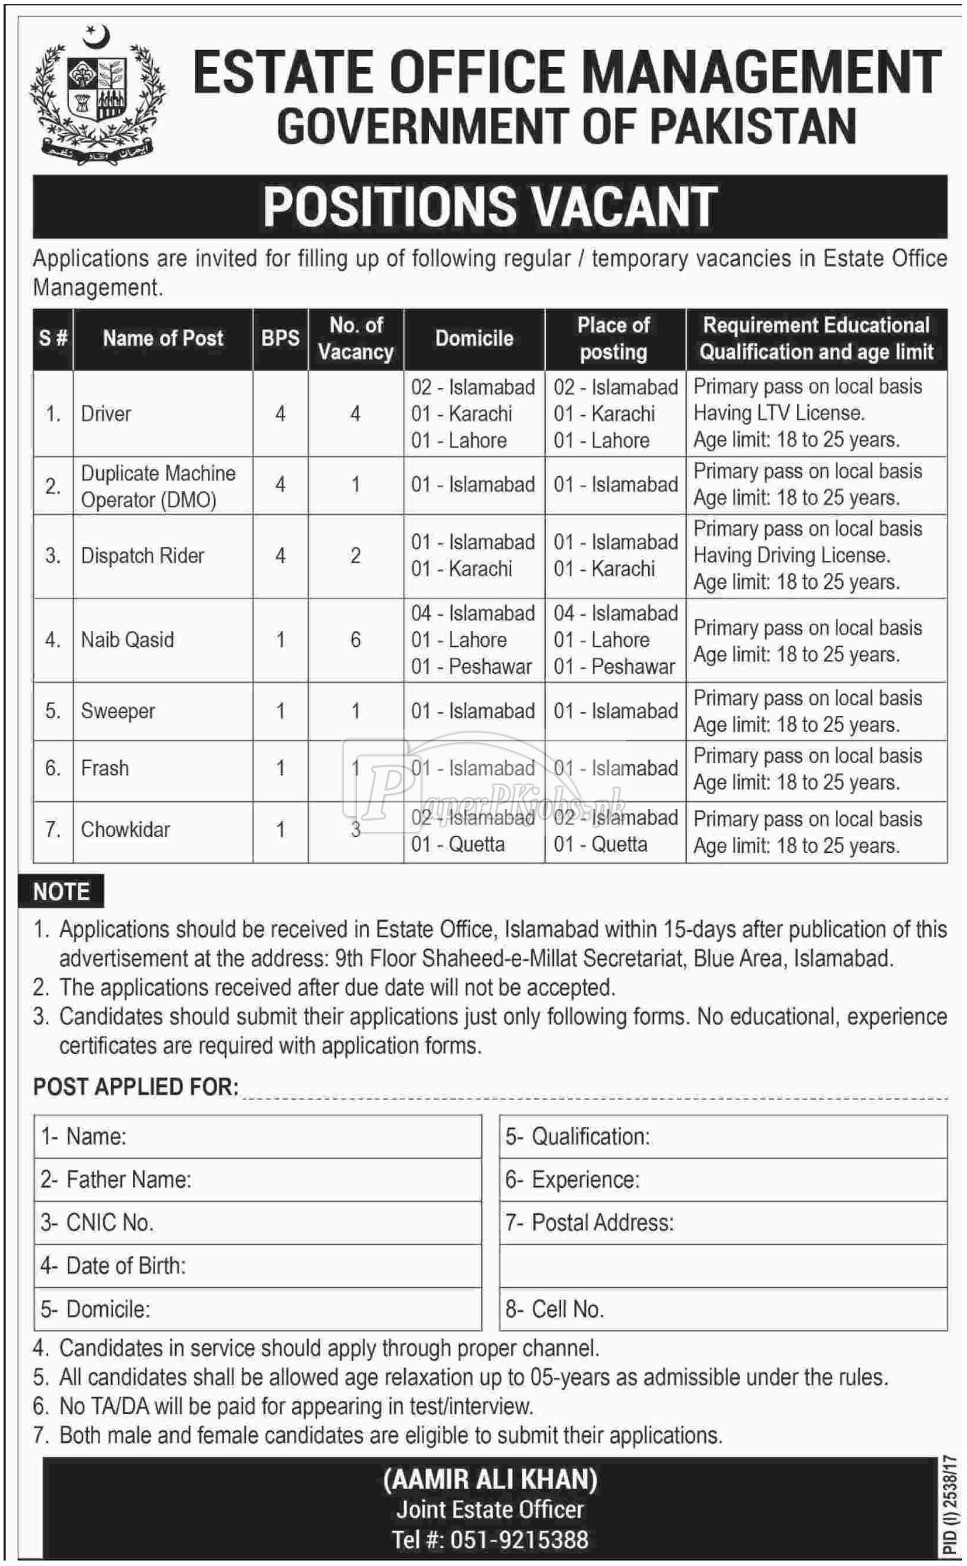 Estate Office Management Government of Pakistan Jobs 2017